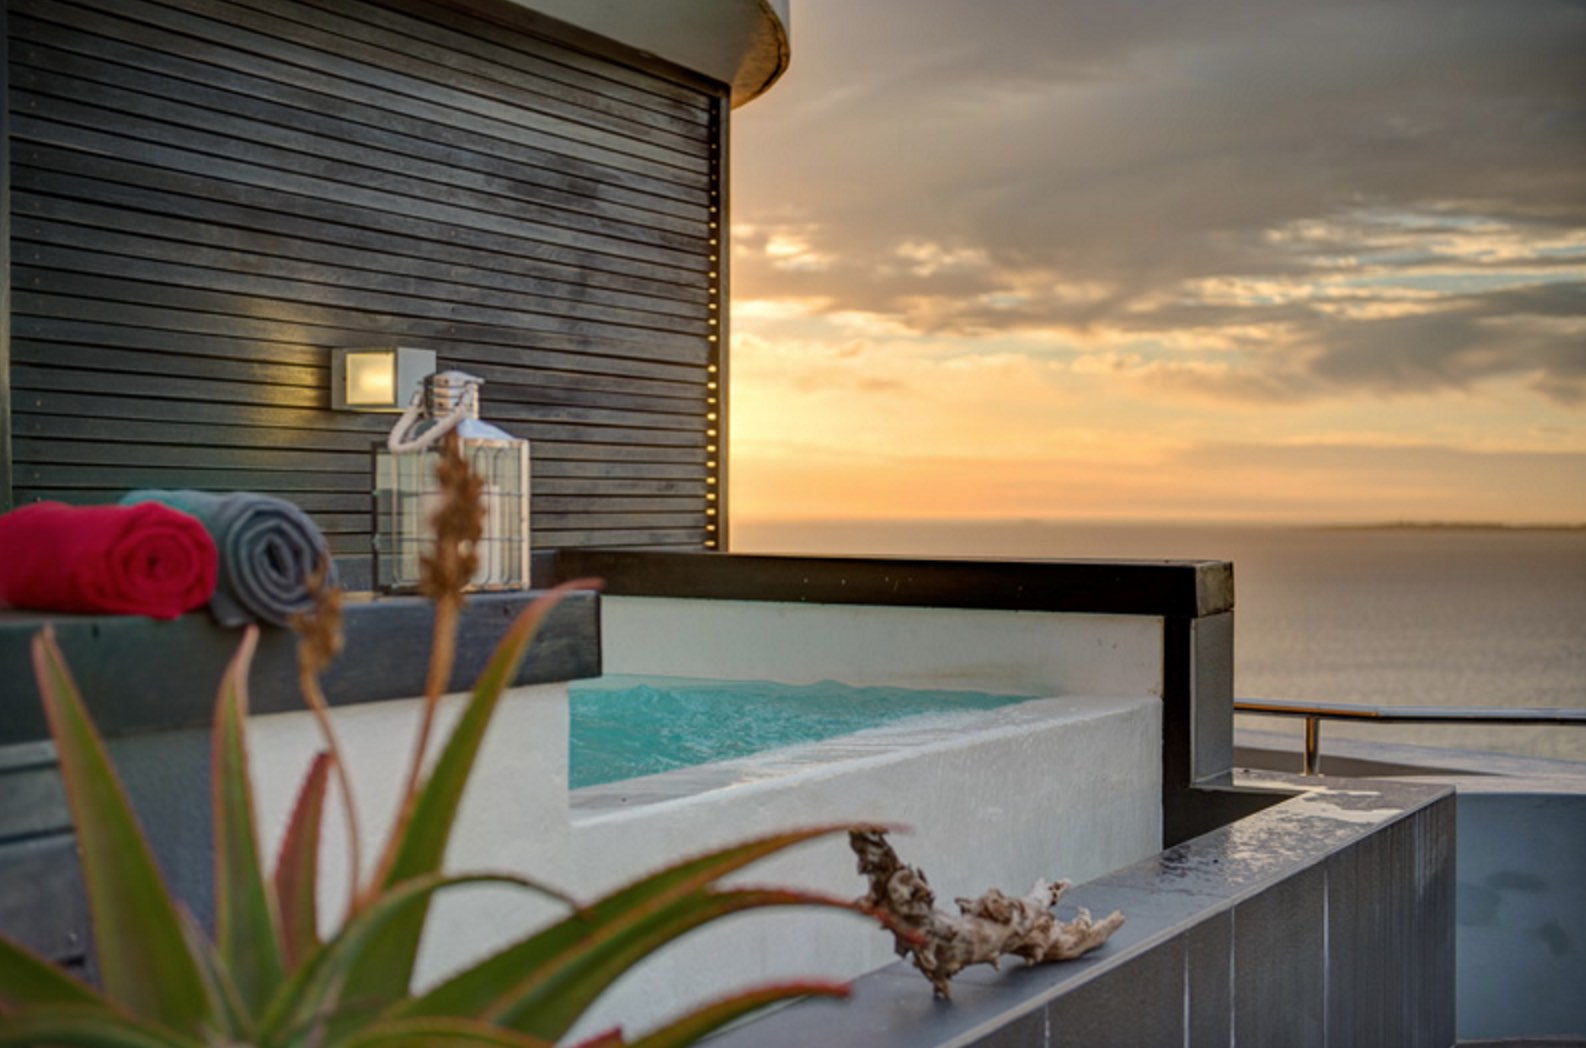 Penthouse on Beach - Luxury Hotels in Cape Town - 4.jpg